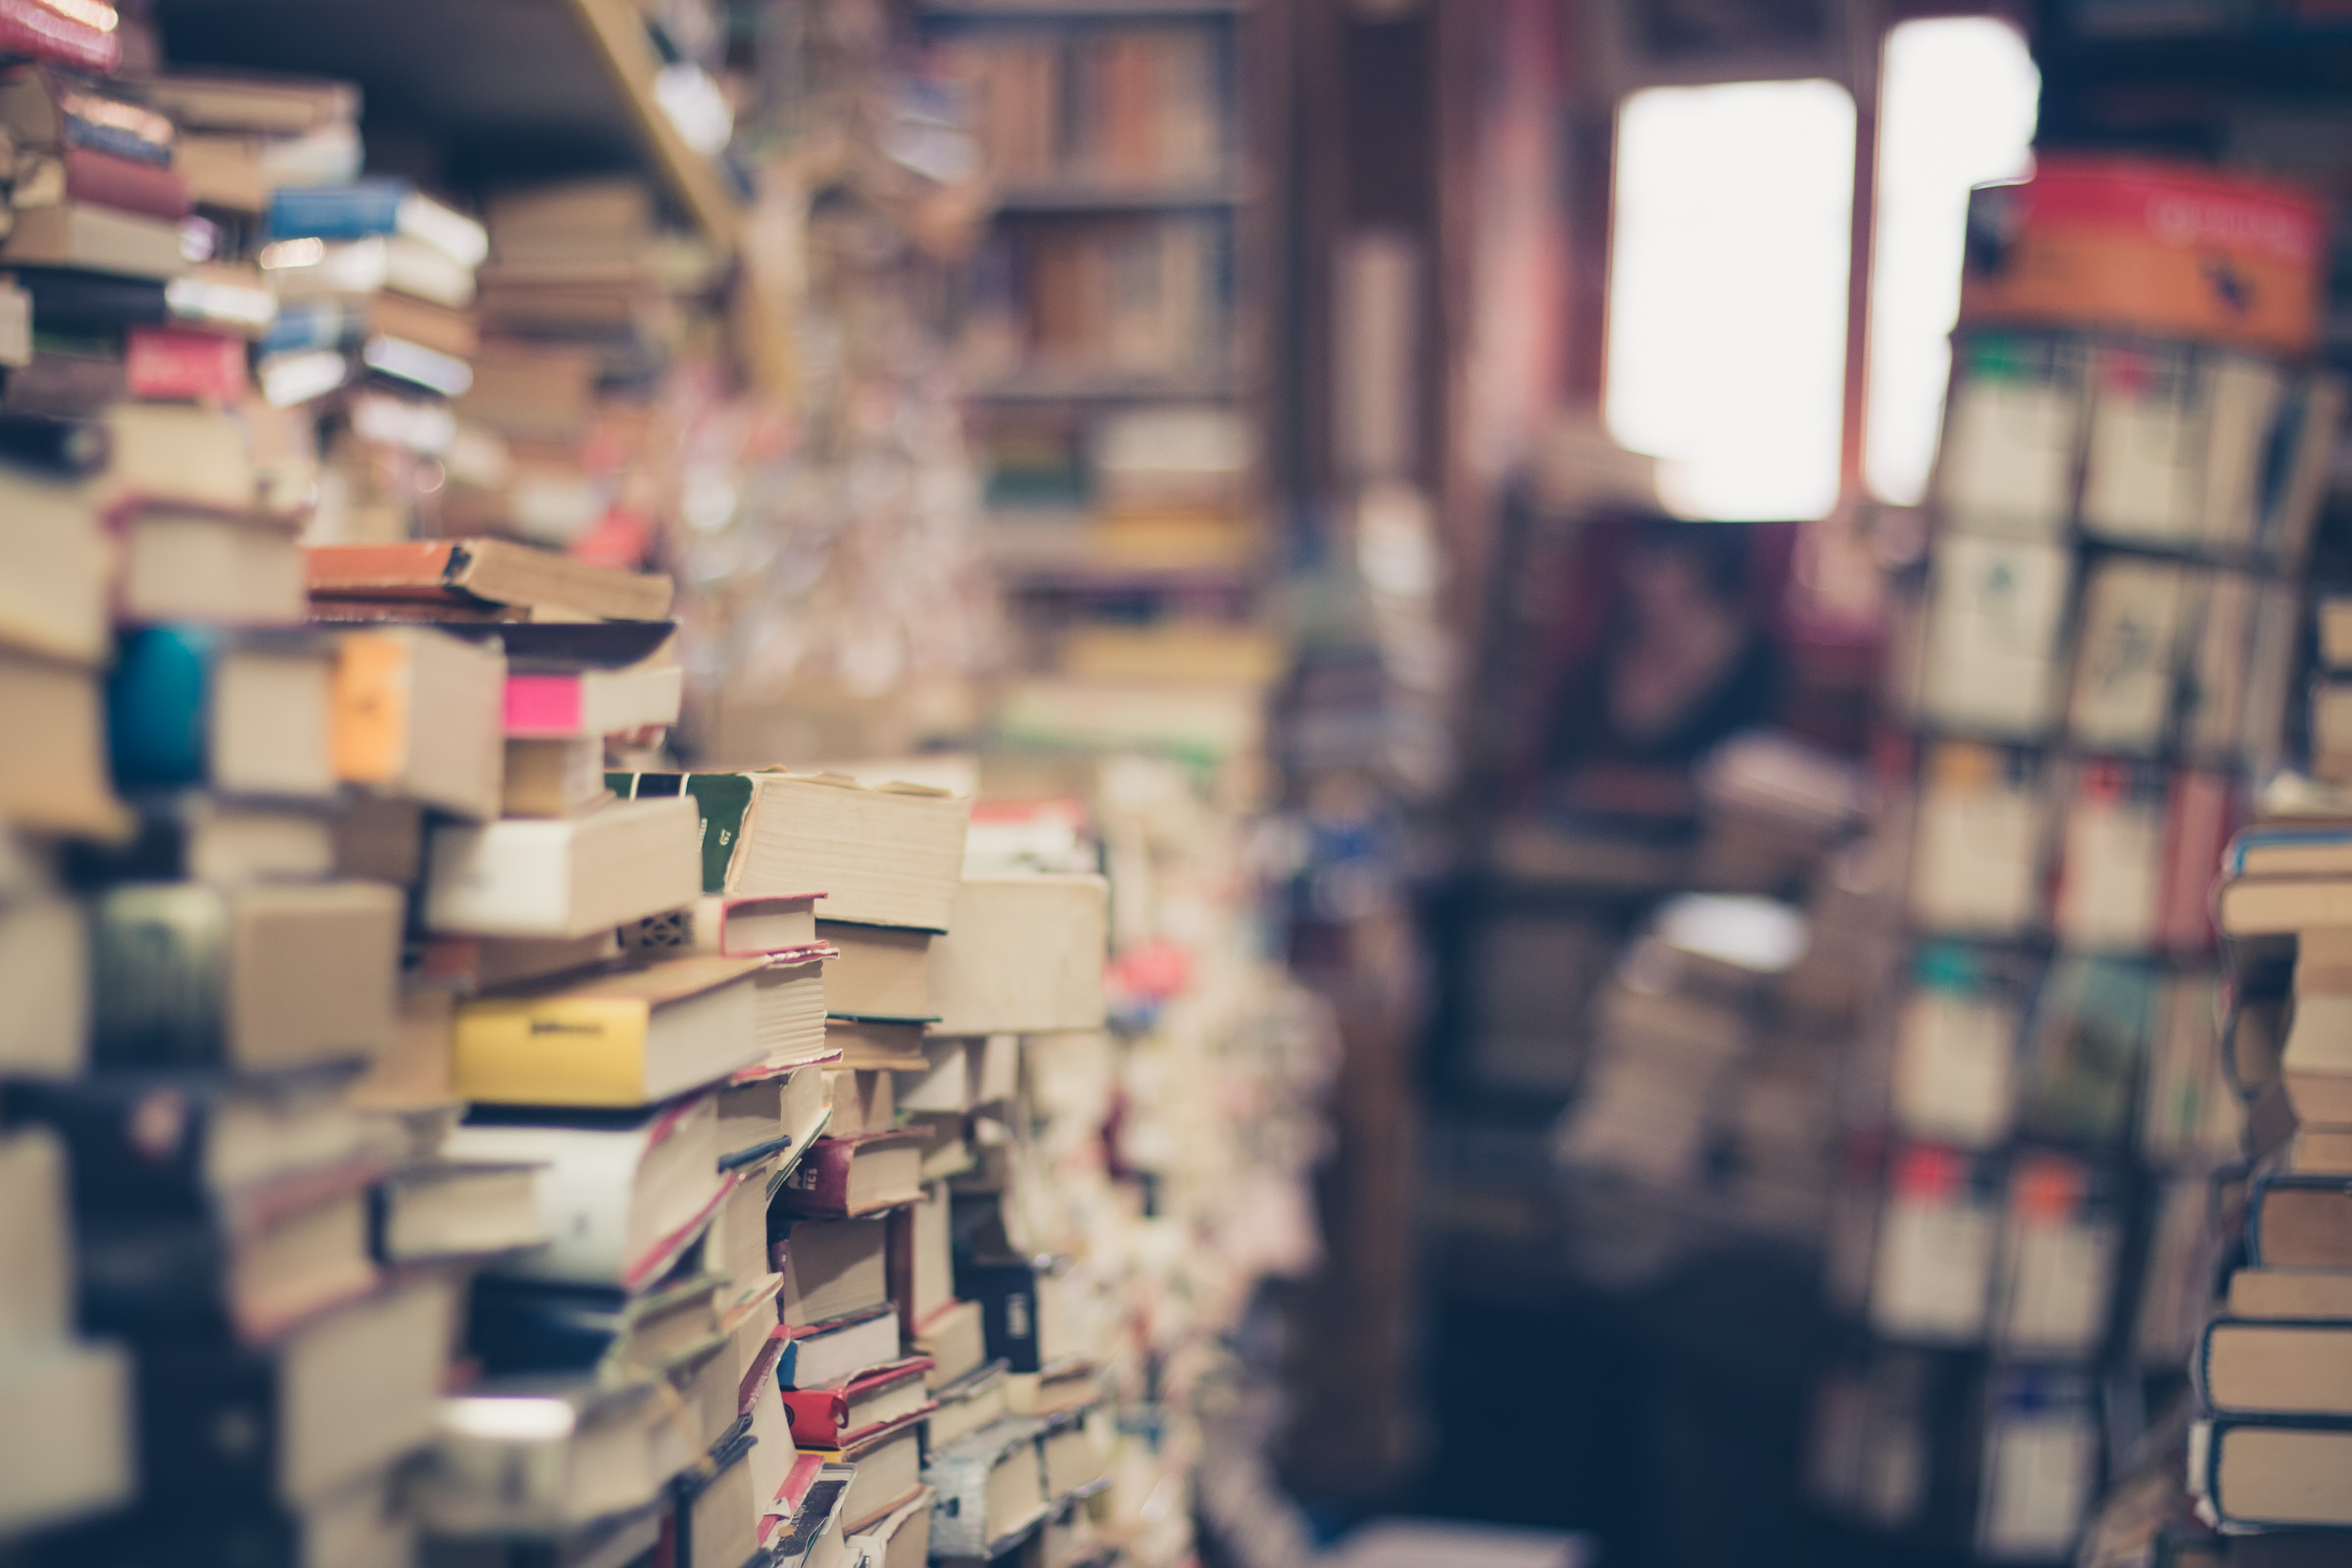 A photo of a stack of books by Eli Samuelu on Unsplash